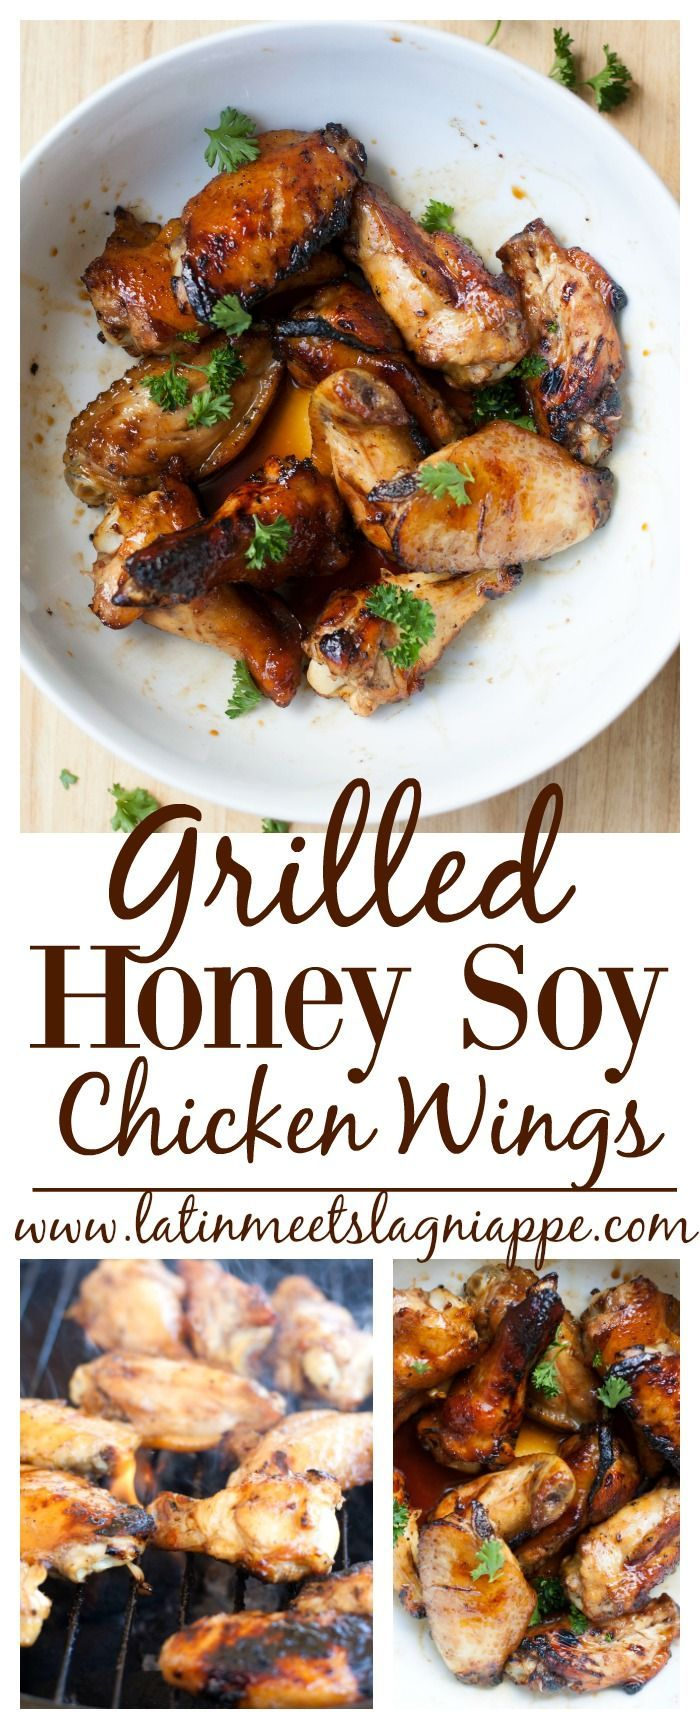 Grilled Honey Soy Chicken Wings